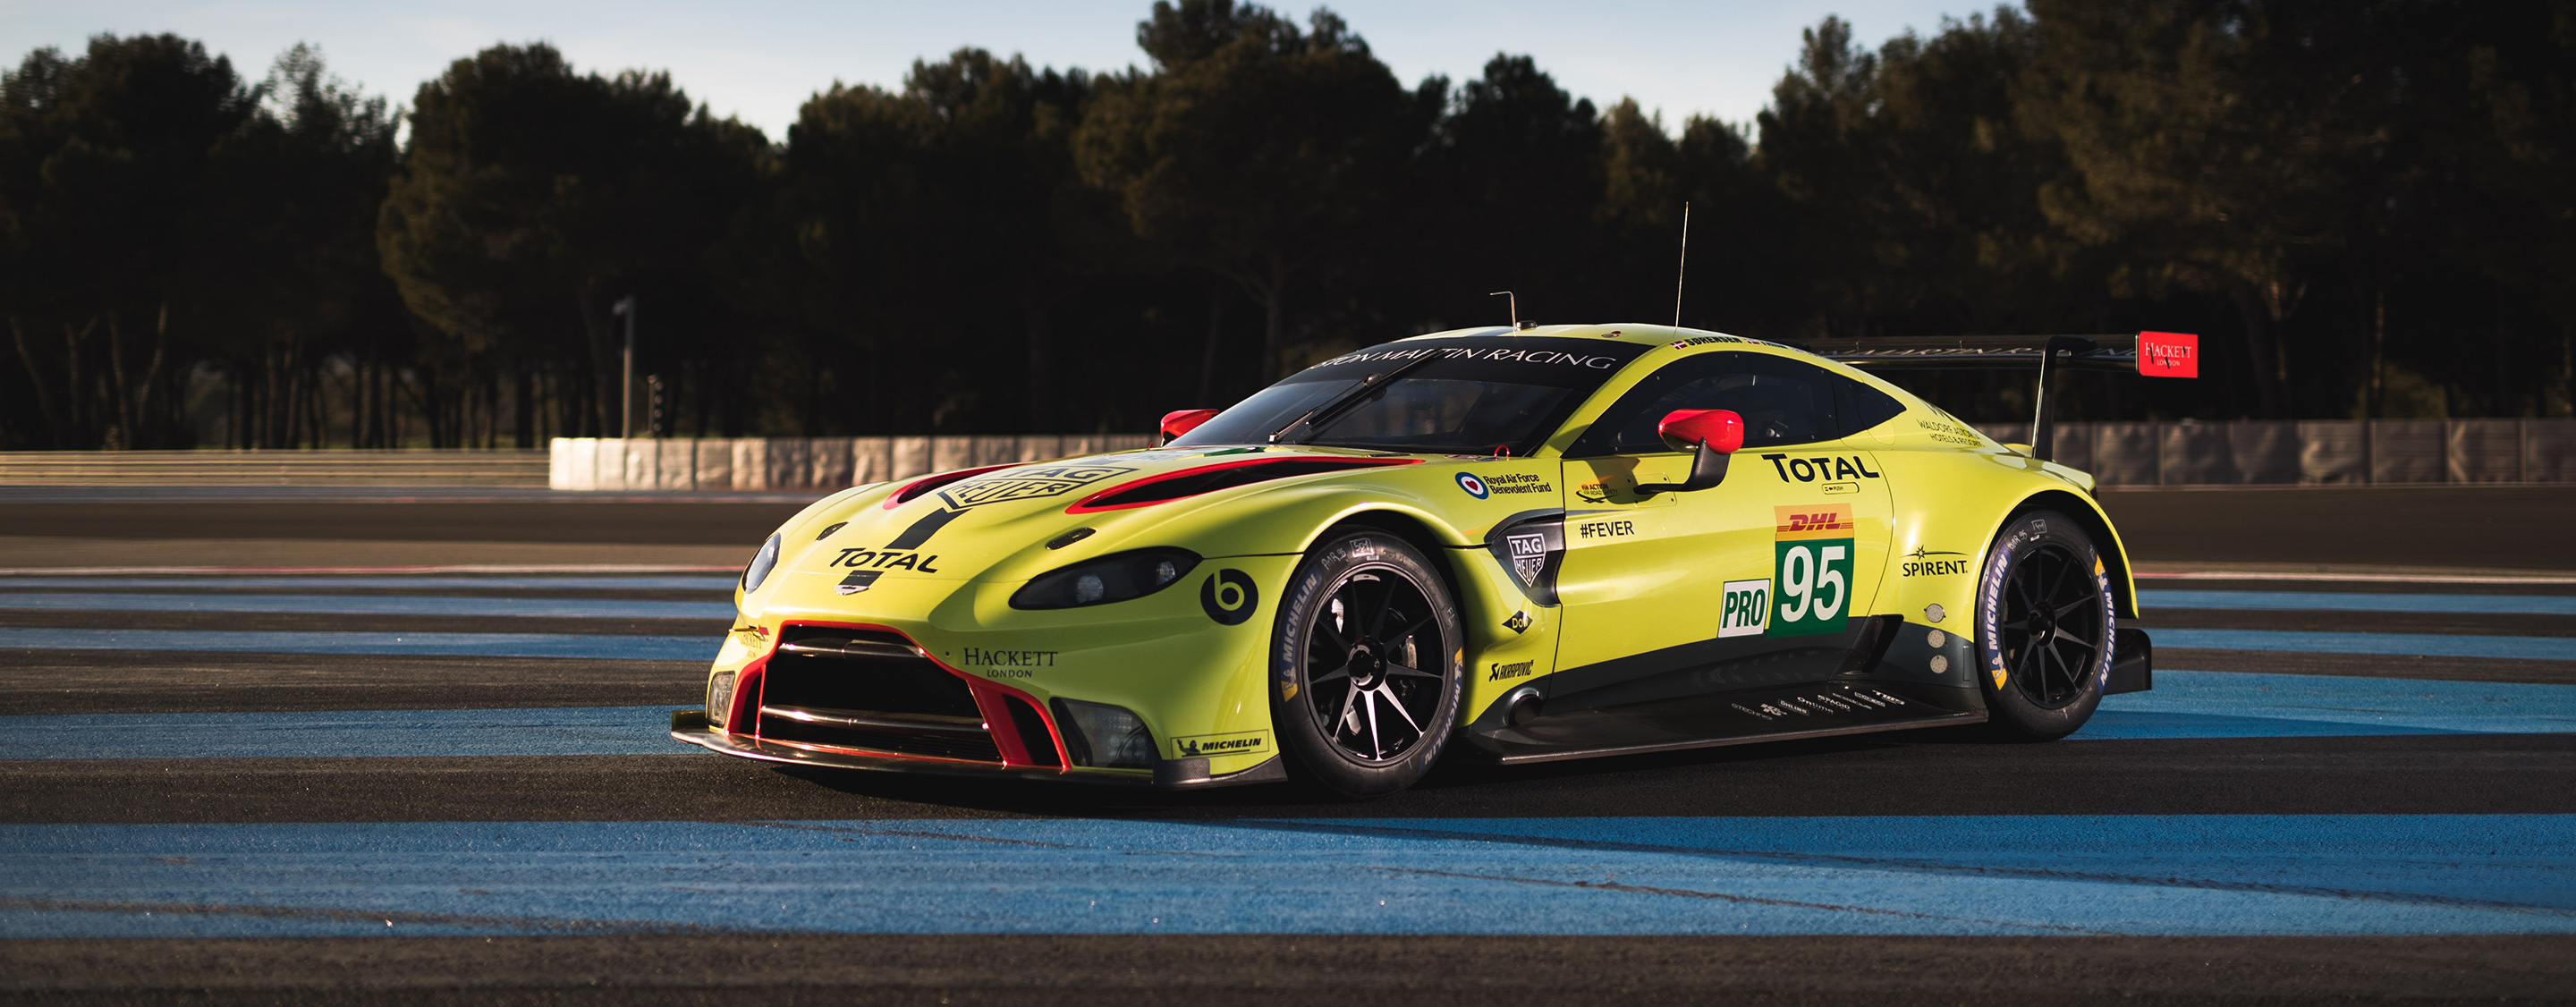 TrackWorthy - Aston Martin Vantage GTE to make its racing debut at Spa-Francorchamps (8)